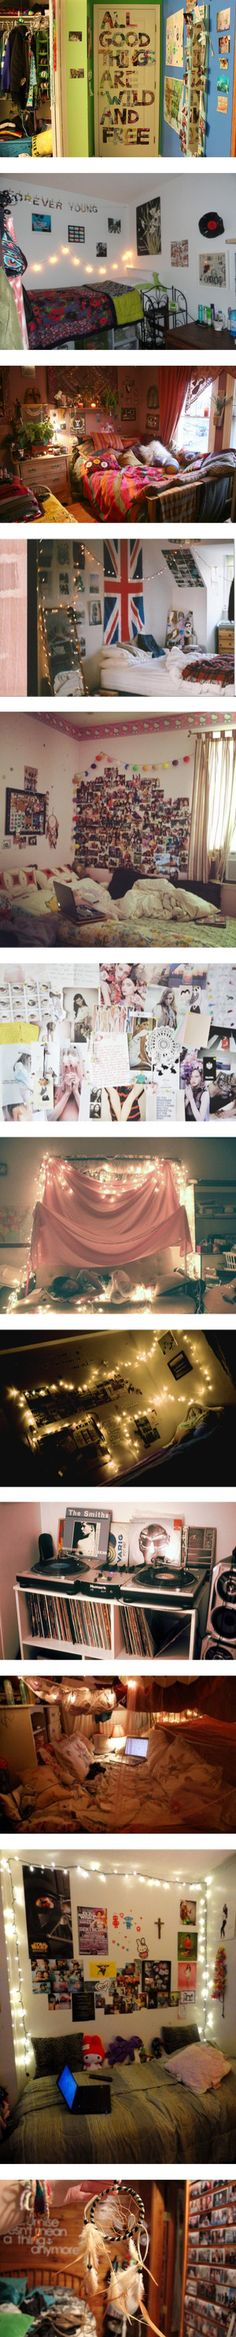 """indie/hipster/alternative bedroom inspiration"" by the-hipster-tip-sisters ❤ liked on Polyvore"